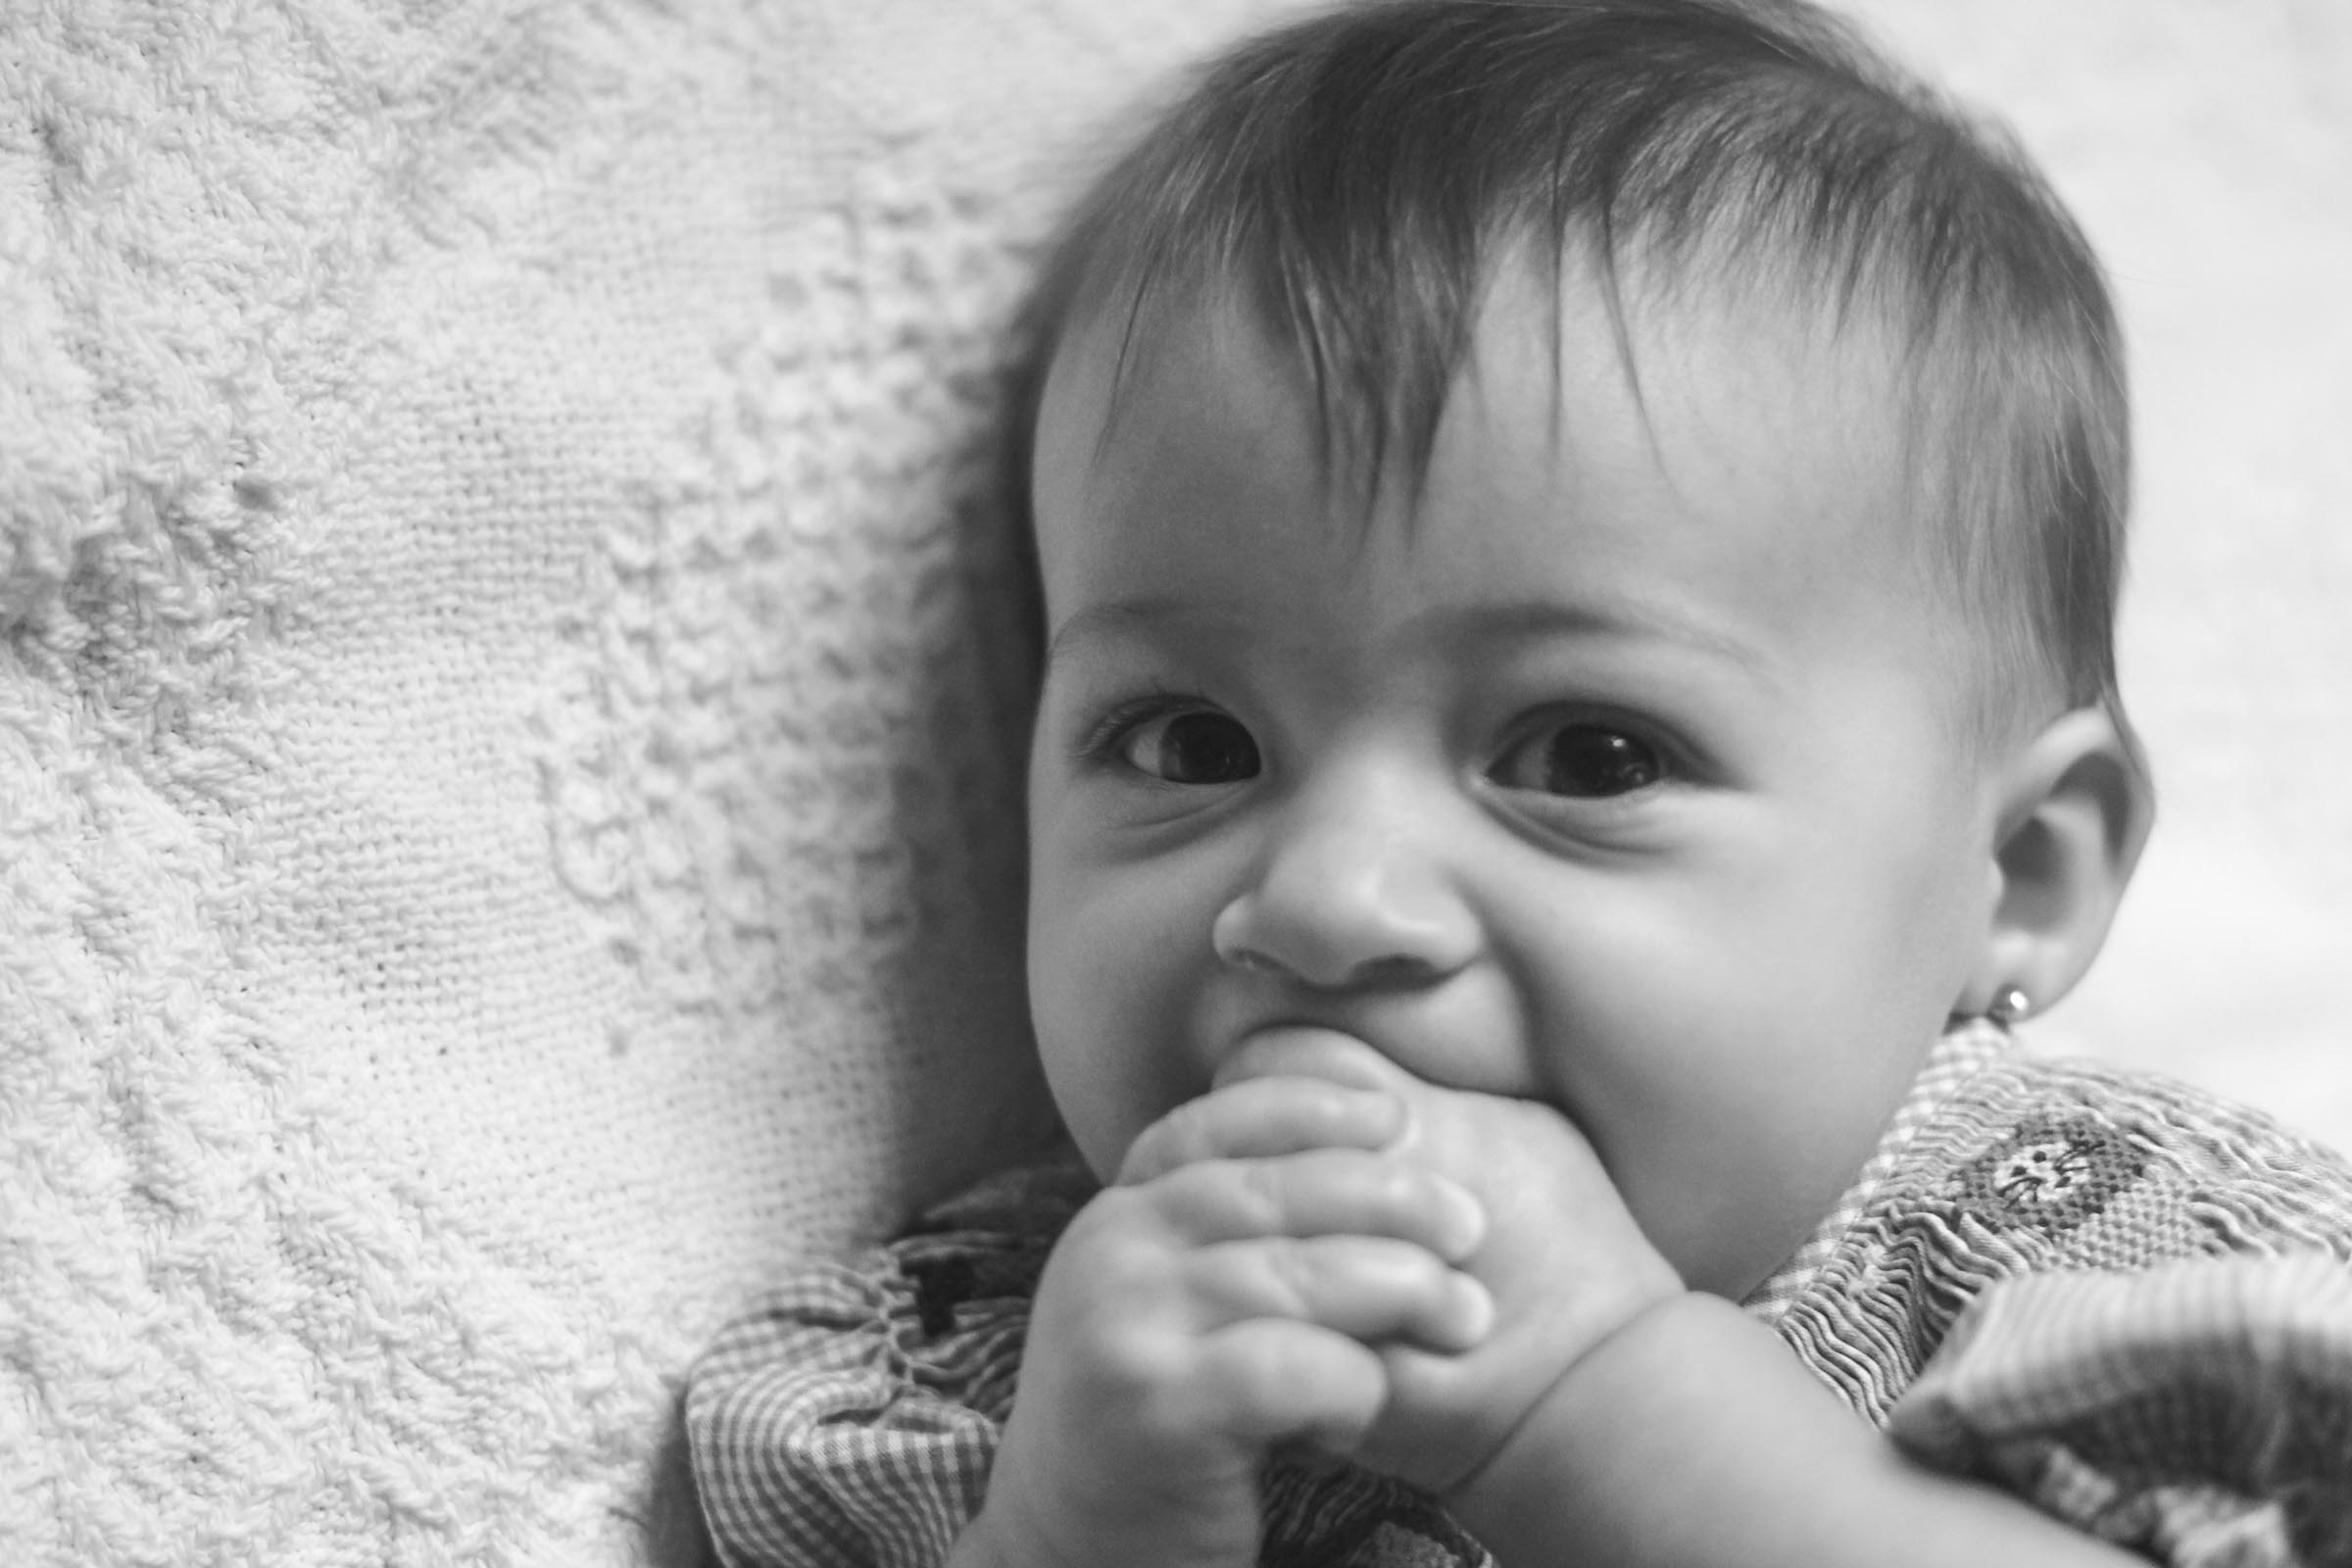 ashley-landry-photography-raymond-09-2016-24-of-41